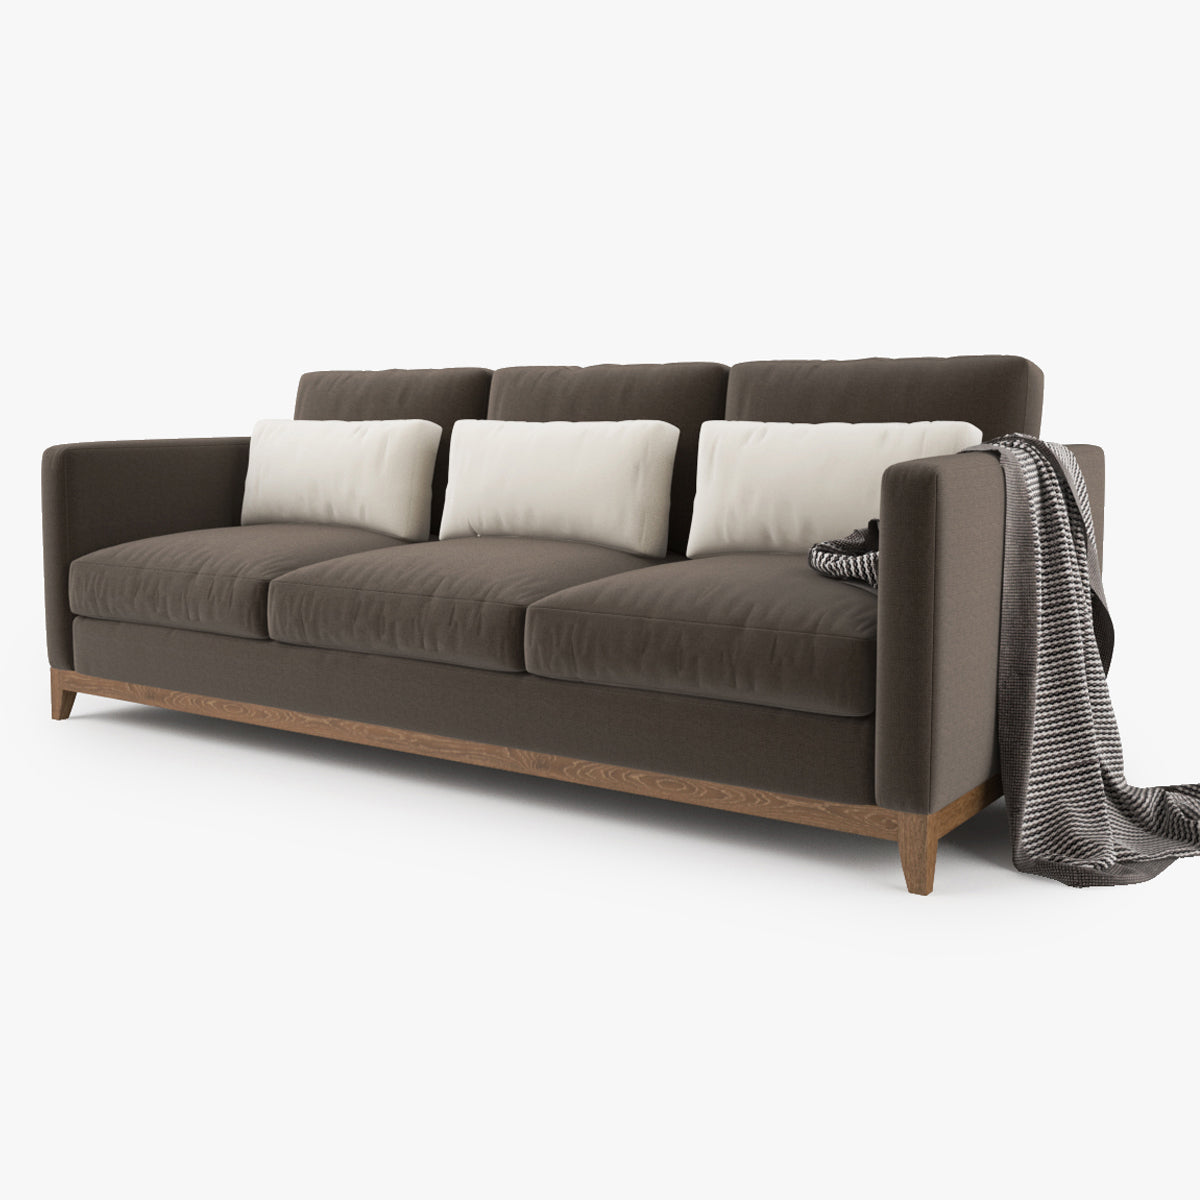 Crate and Barrel Taraval 3 Seat Sofa 3D Model